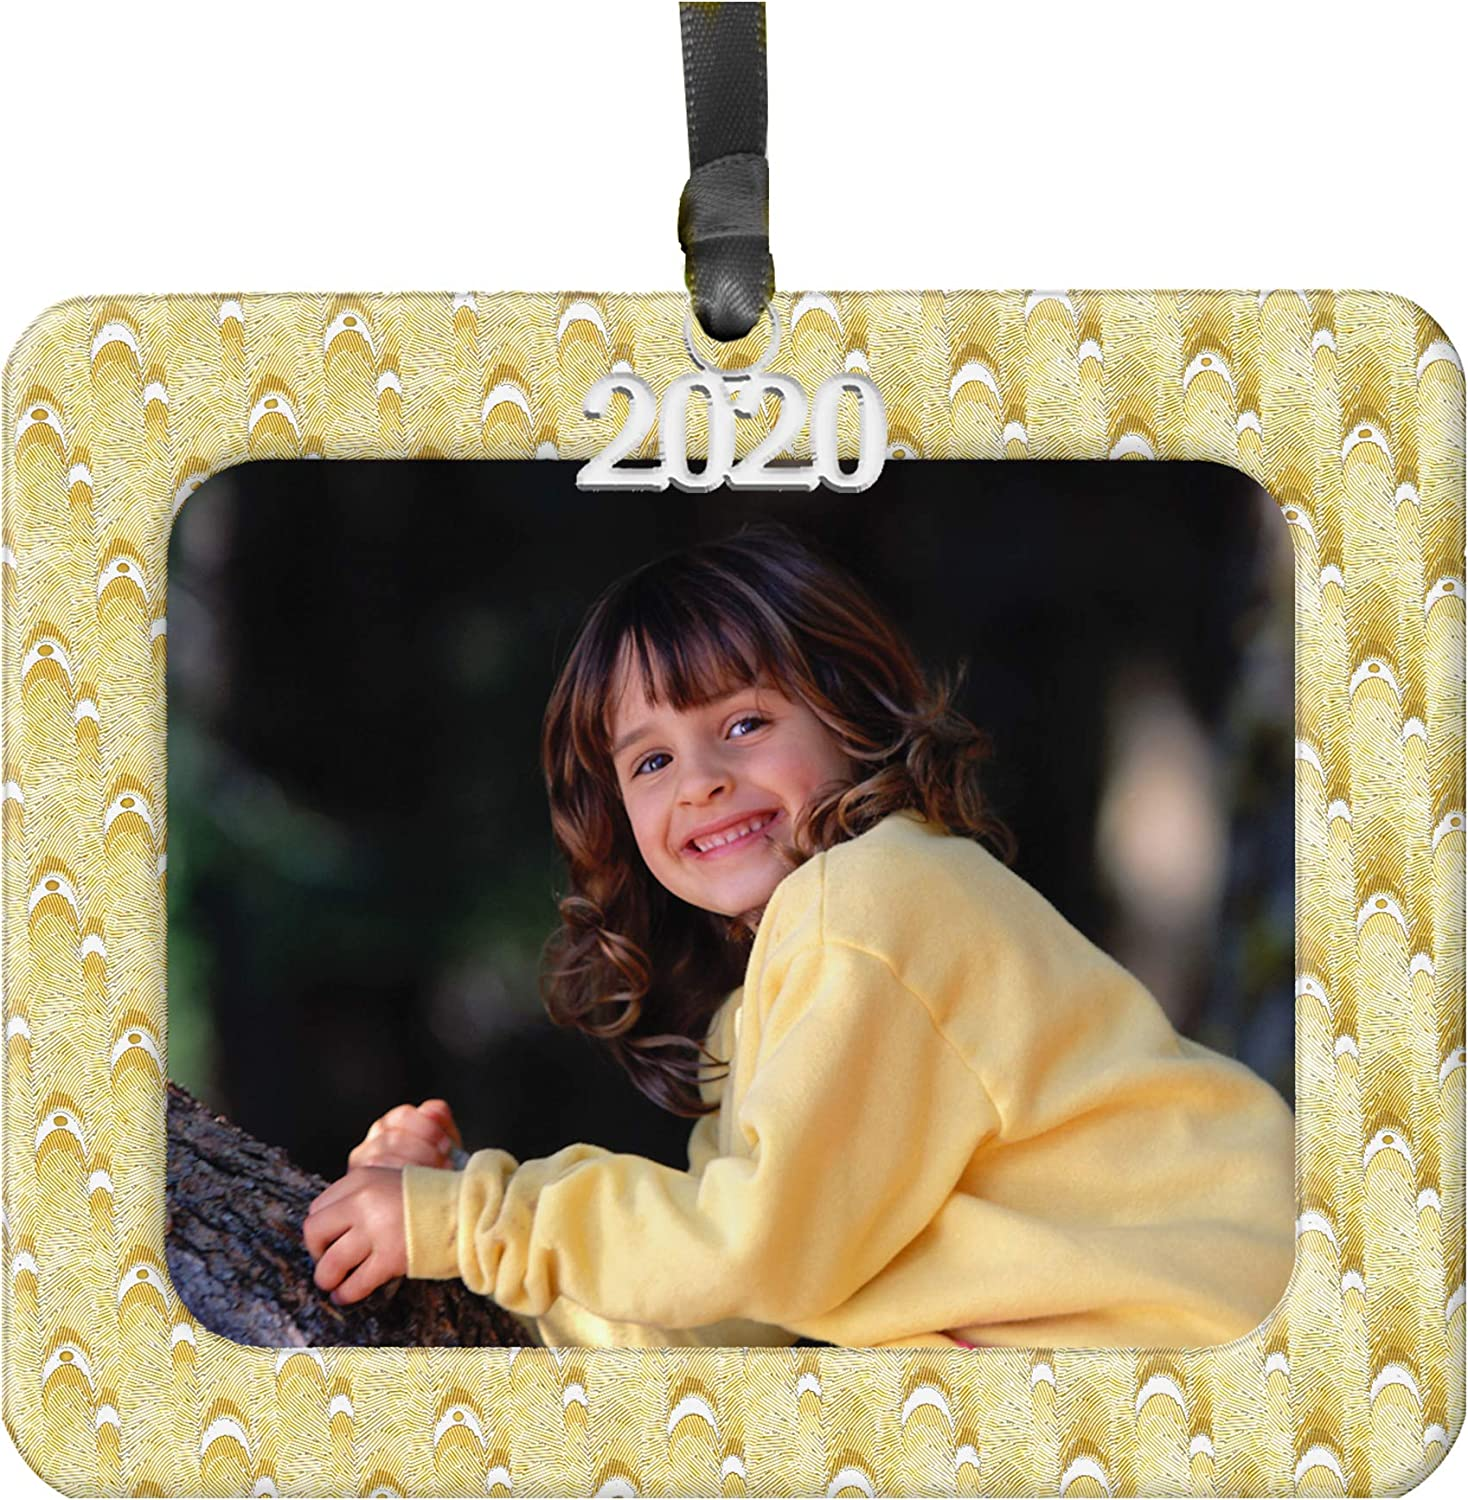 2020 Photo Christmas Ornament, Gold-Silver Iridescent Foil Blended Design with Black Satin Accent Ribbon | Magnetic Easy-Load Photo Includes Non-Glare Photo Protector, Horizontal